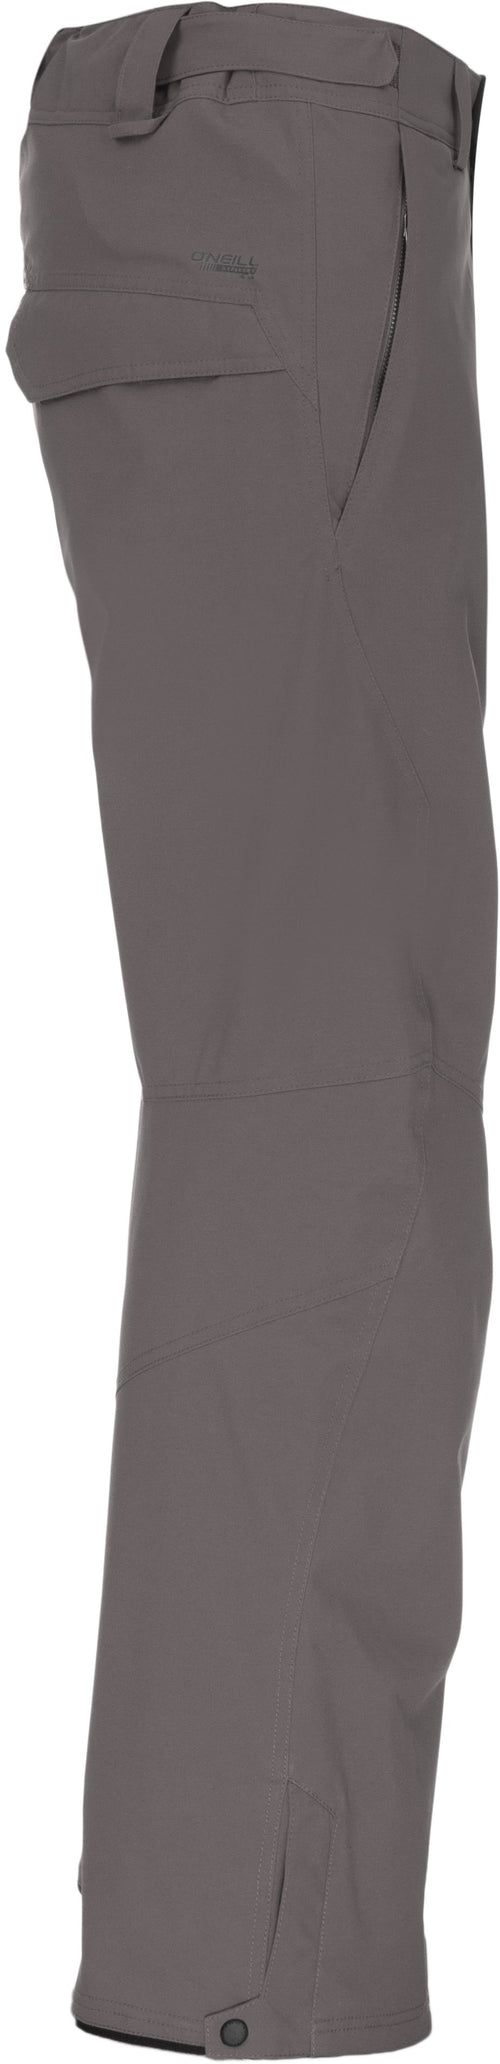 PM HAMMER PANT INSULATED